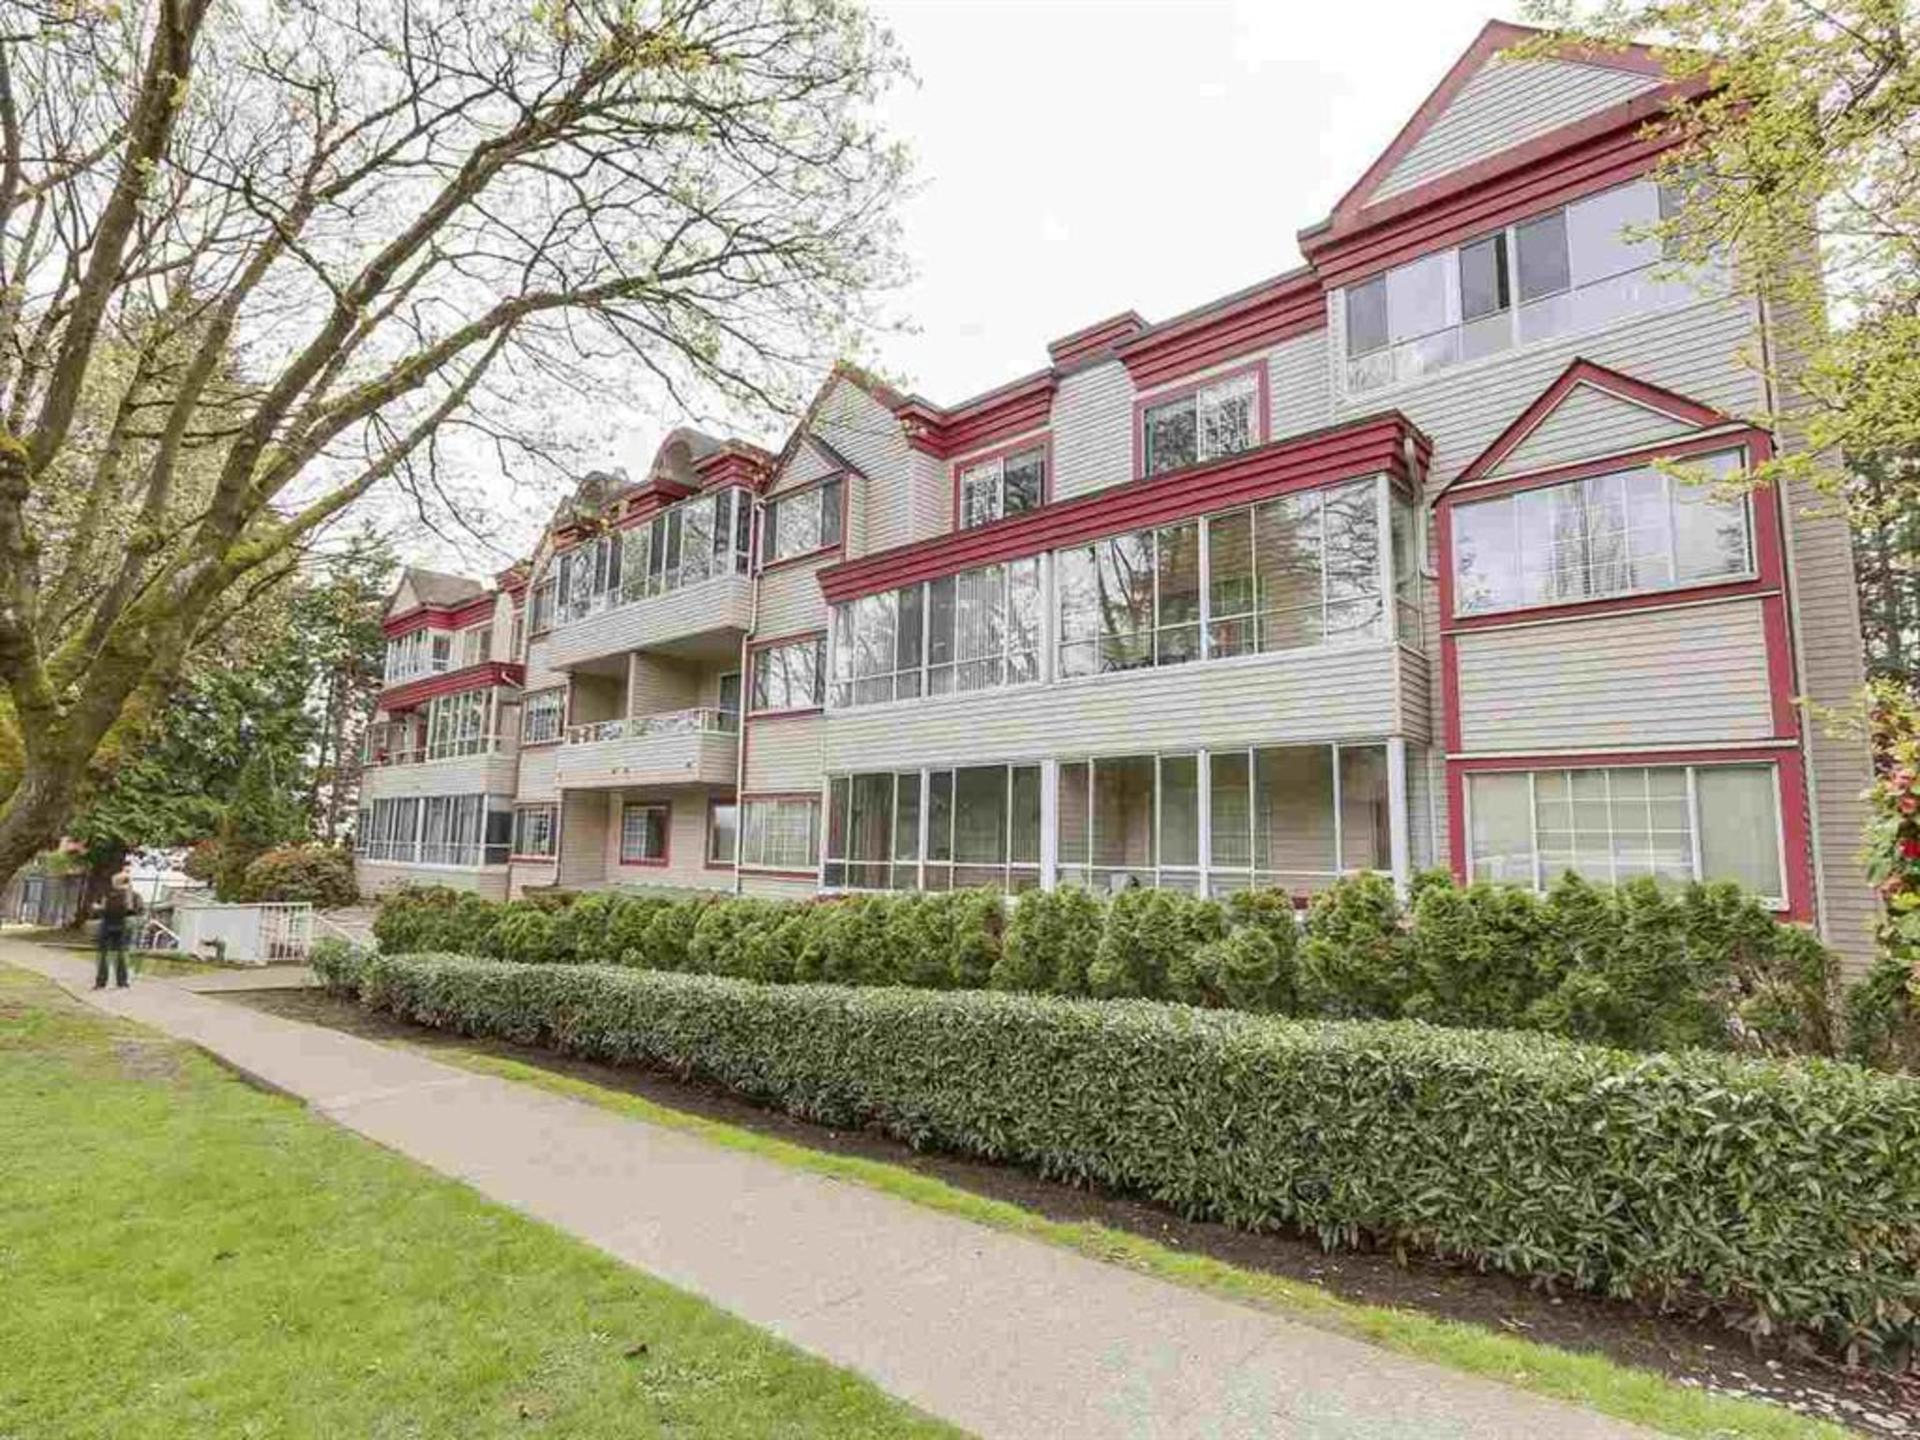 Exterior Building View at 108 - 1386 73, Marpole, Vancouver West